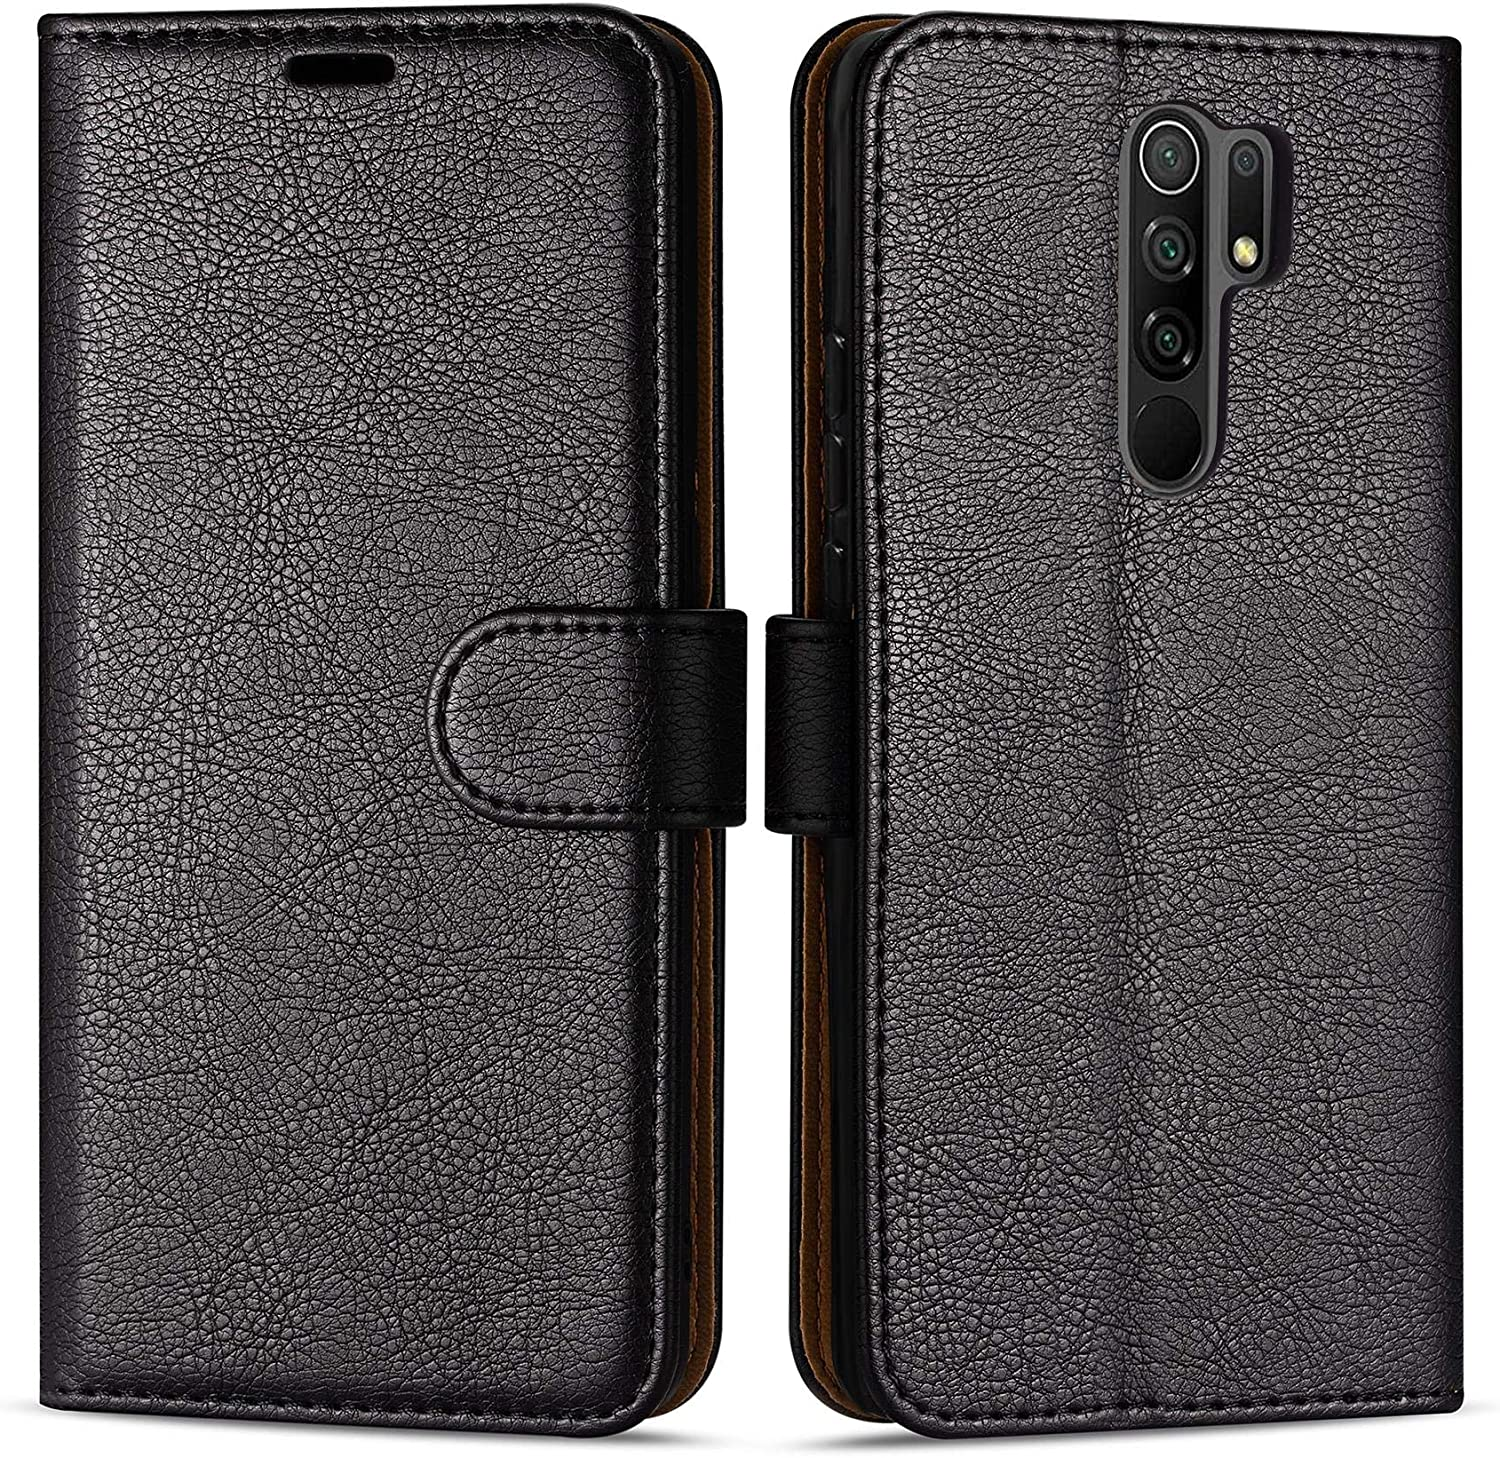 Case Collection Funda de Cuero para Xiaomi Redmi 9 (6,53